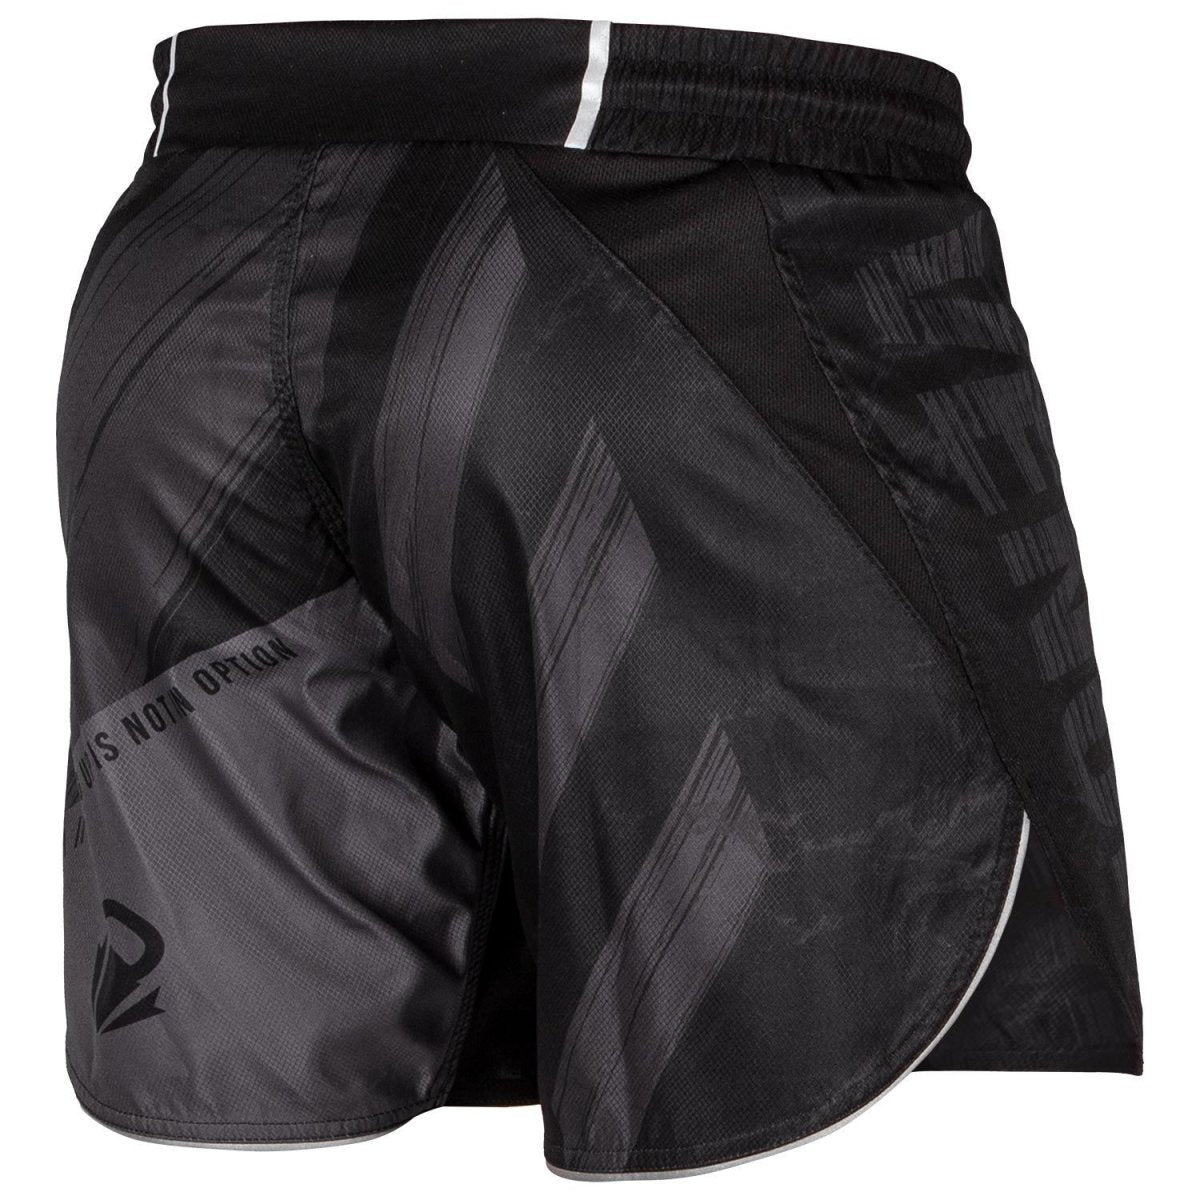 VENUM SHORTS AMRAP BLACK/GREY - MSM FIGHT SHOPVENUM